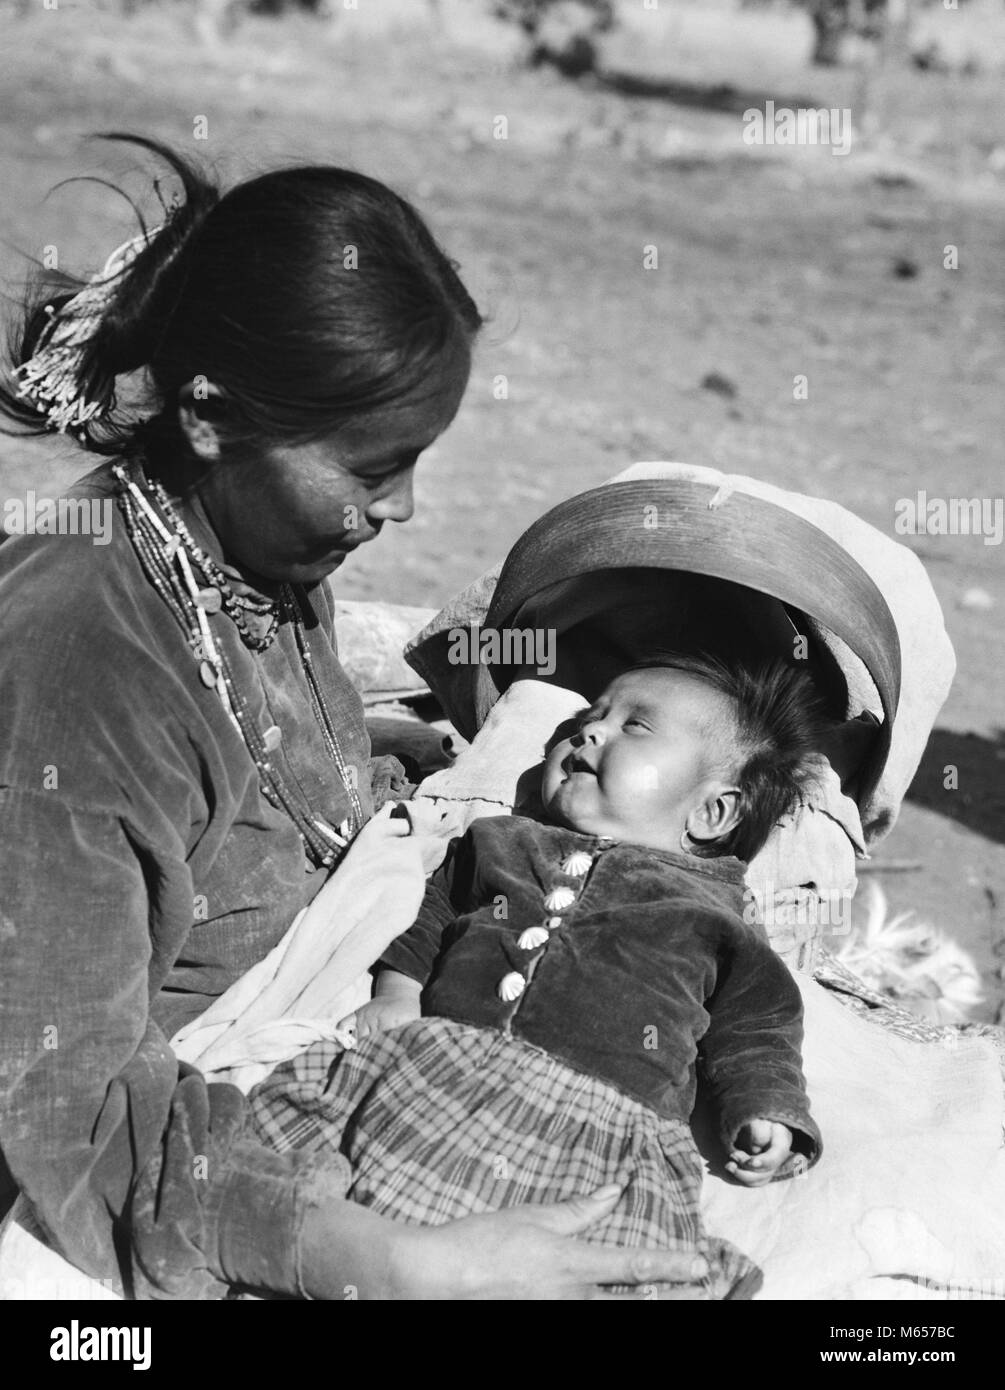 1930s NATIVE AMERICAN NAVAJO INDIAN WOMAN MOTHER HOLDING SMILING BABY PAPOOSE IN CRADLE BOARD - i1125 HAR001 HARS - Stock Image